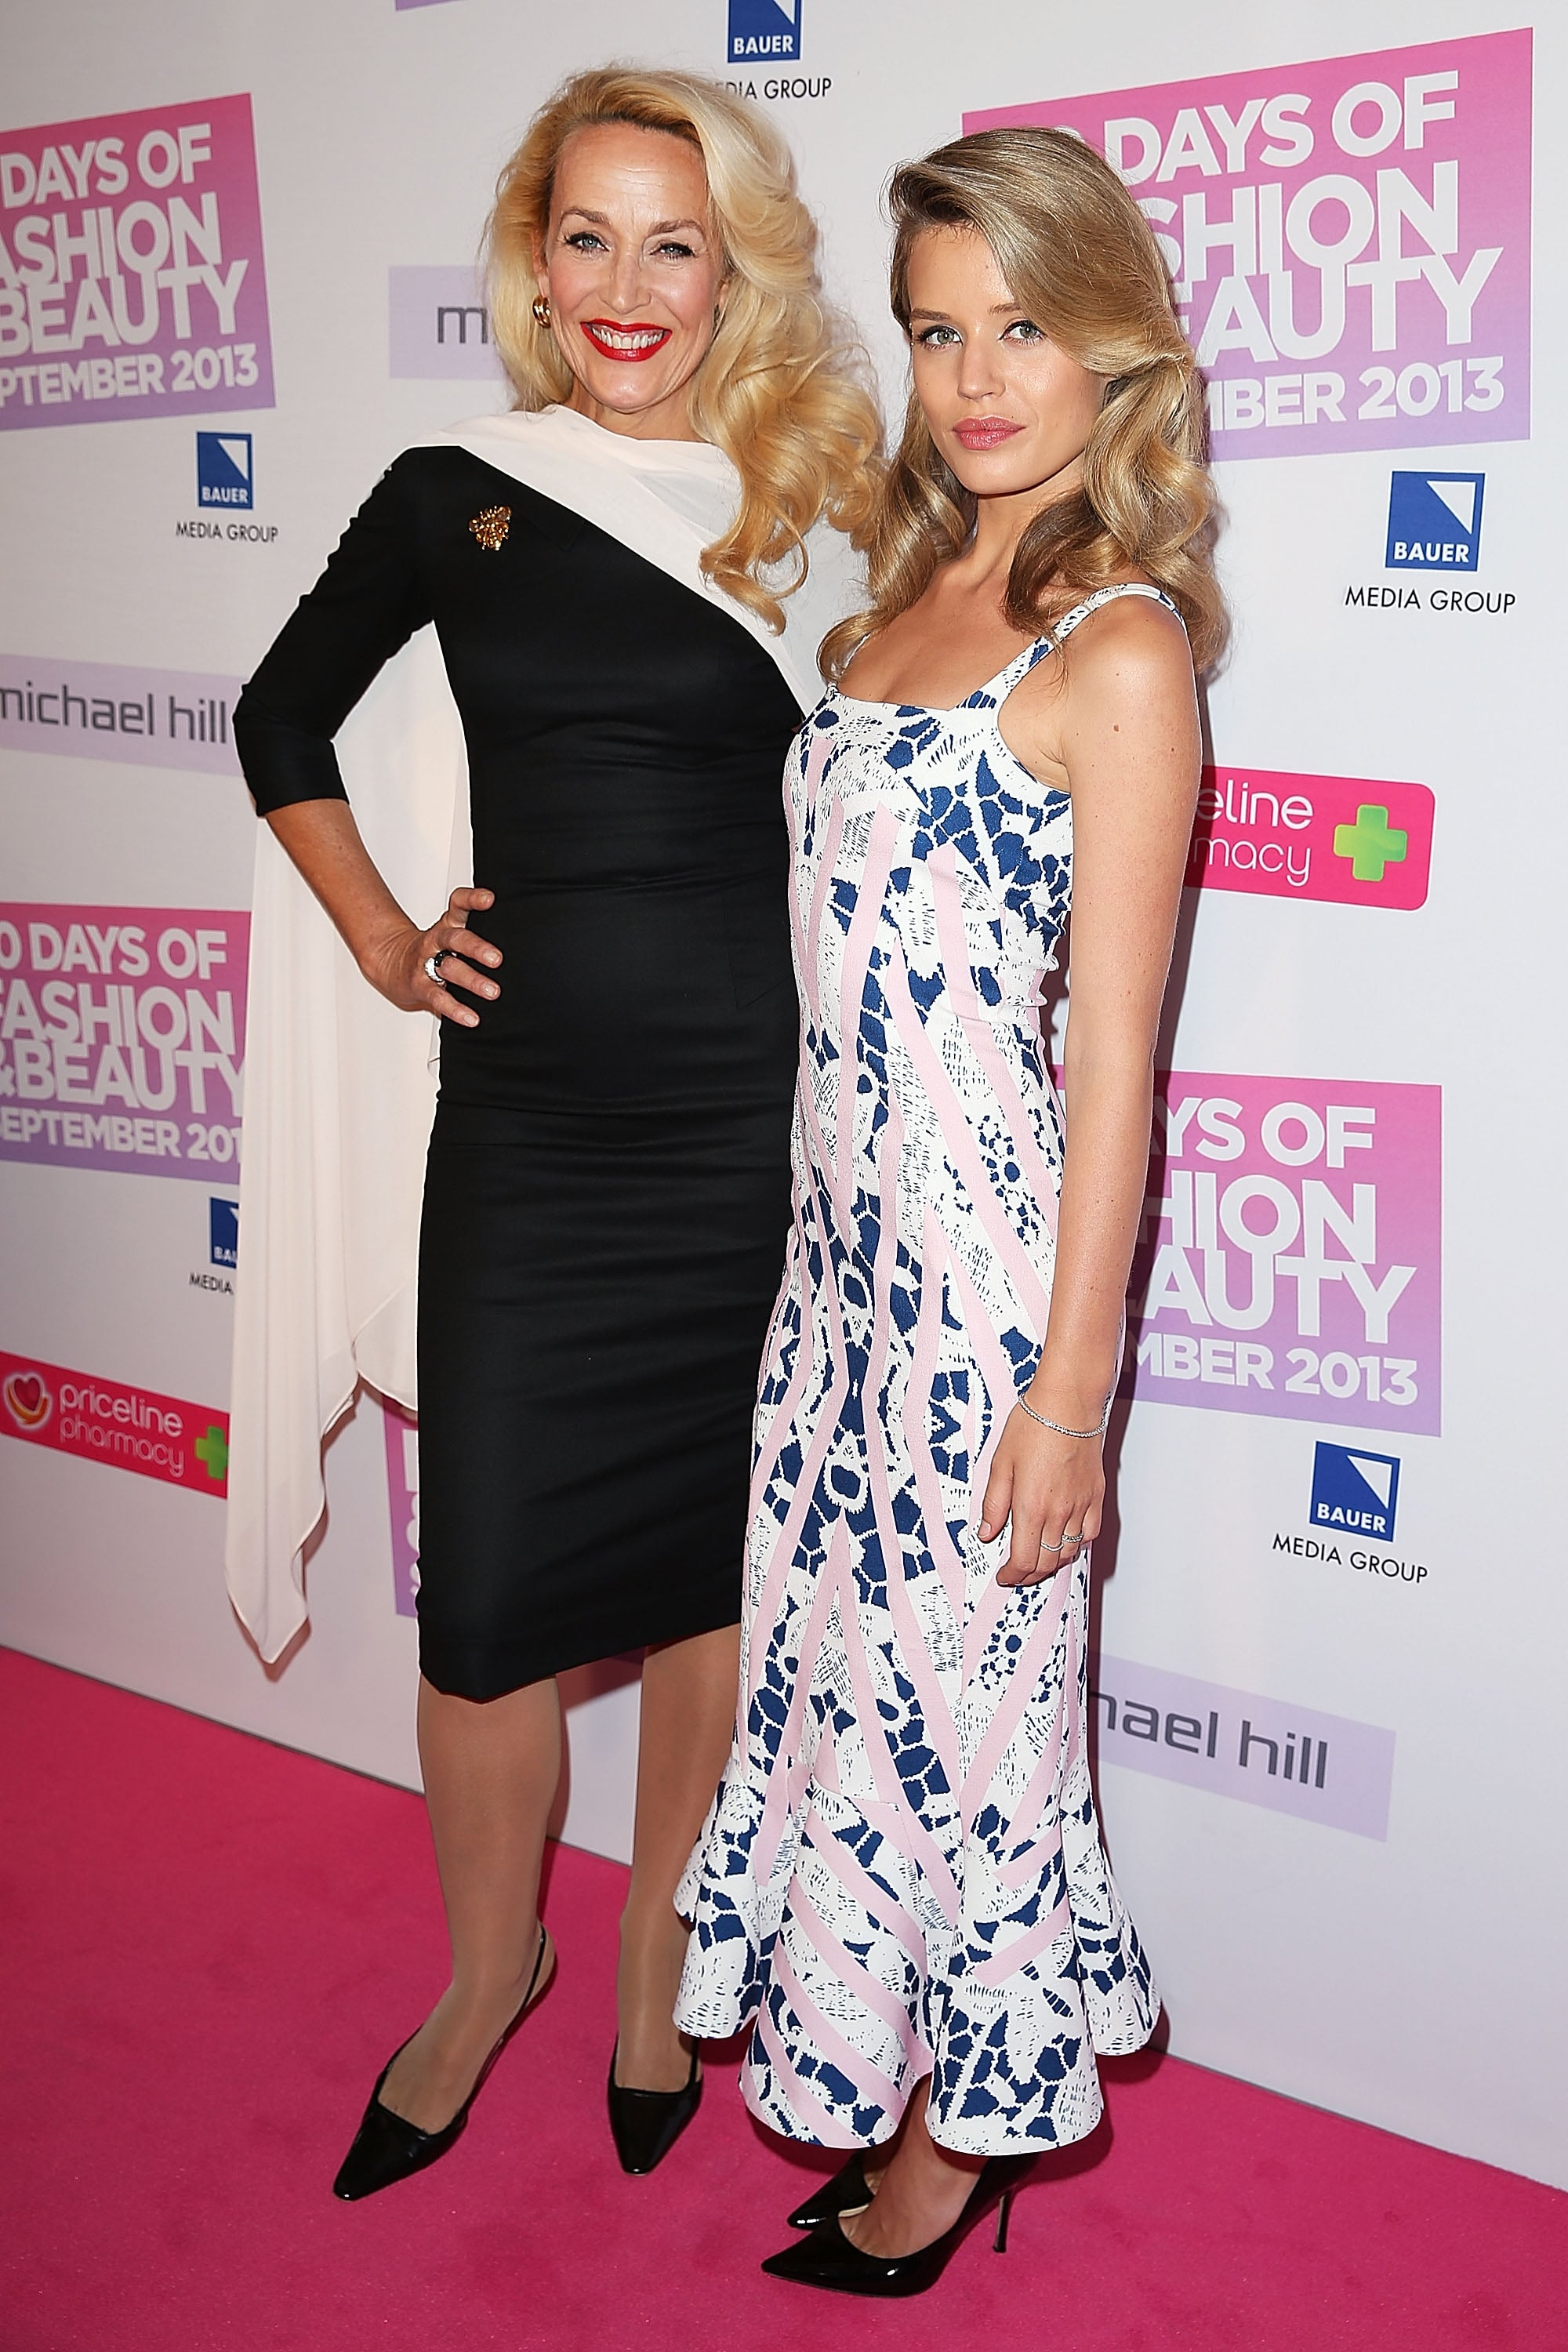 Jerry Hall joined a femininely dressed Georgia May Jagger at the Sydney 30 Days of Fashion and Beauty launch event.